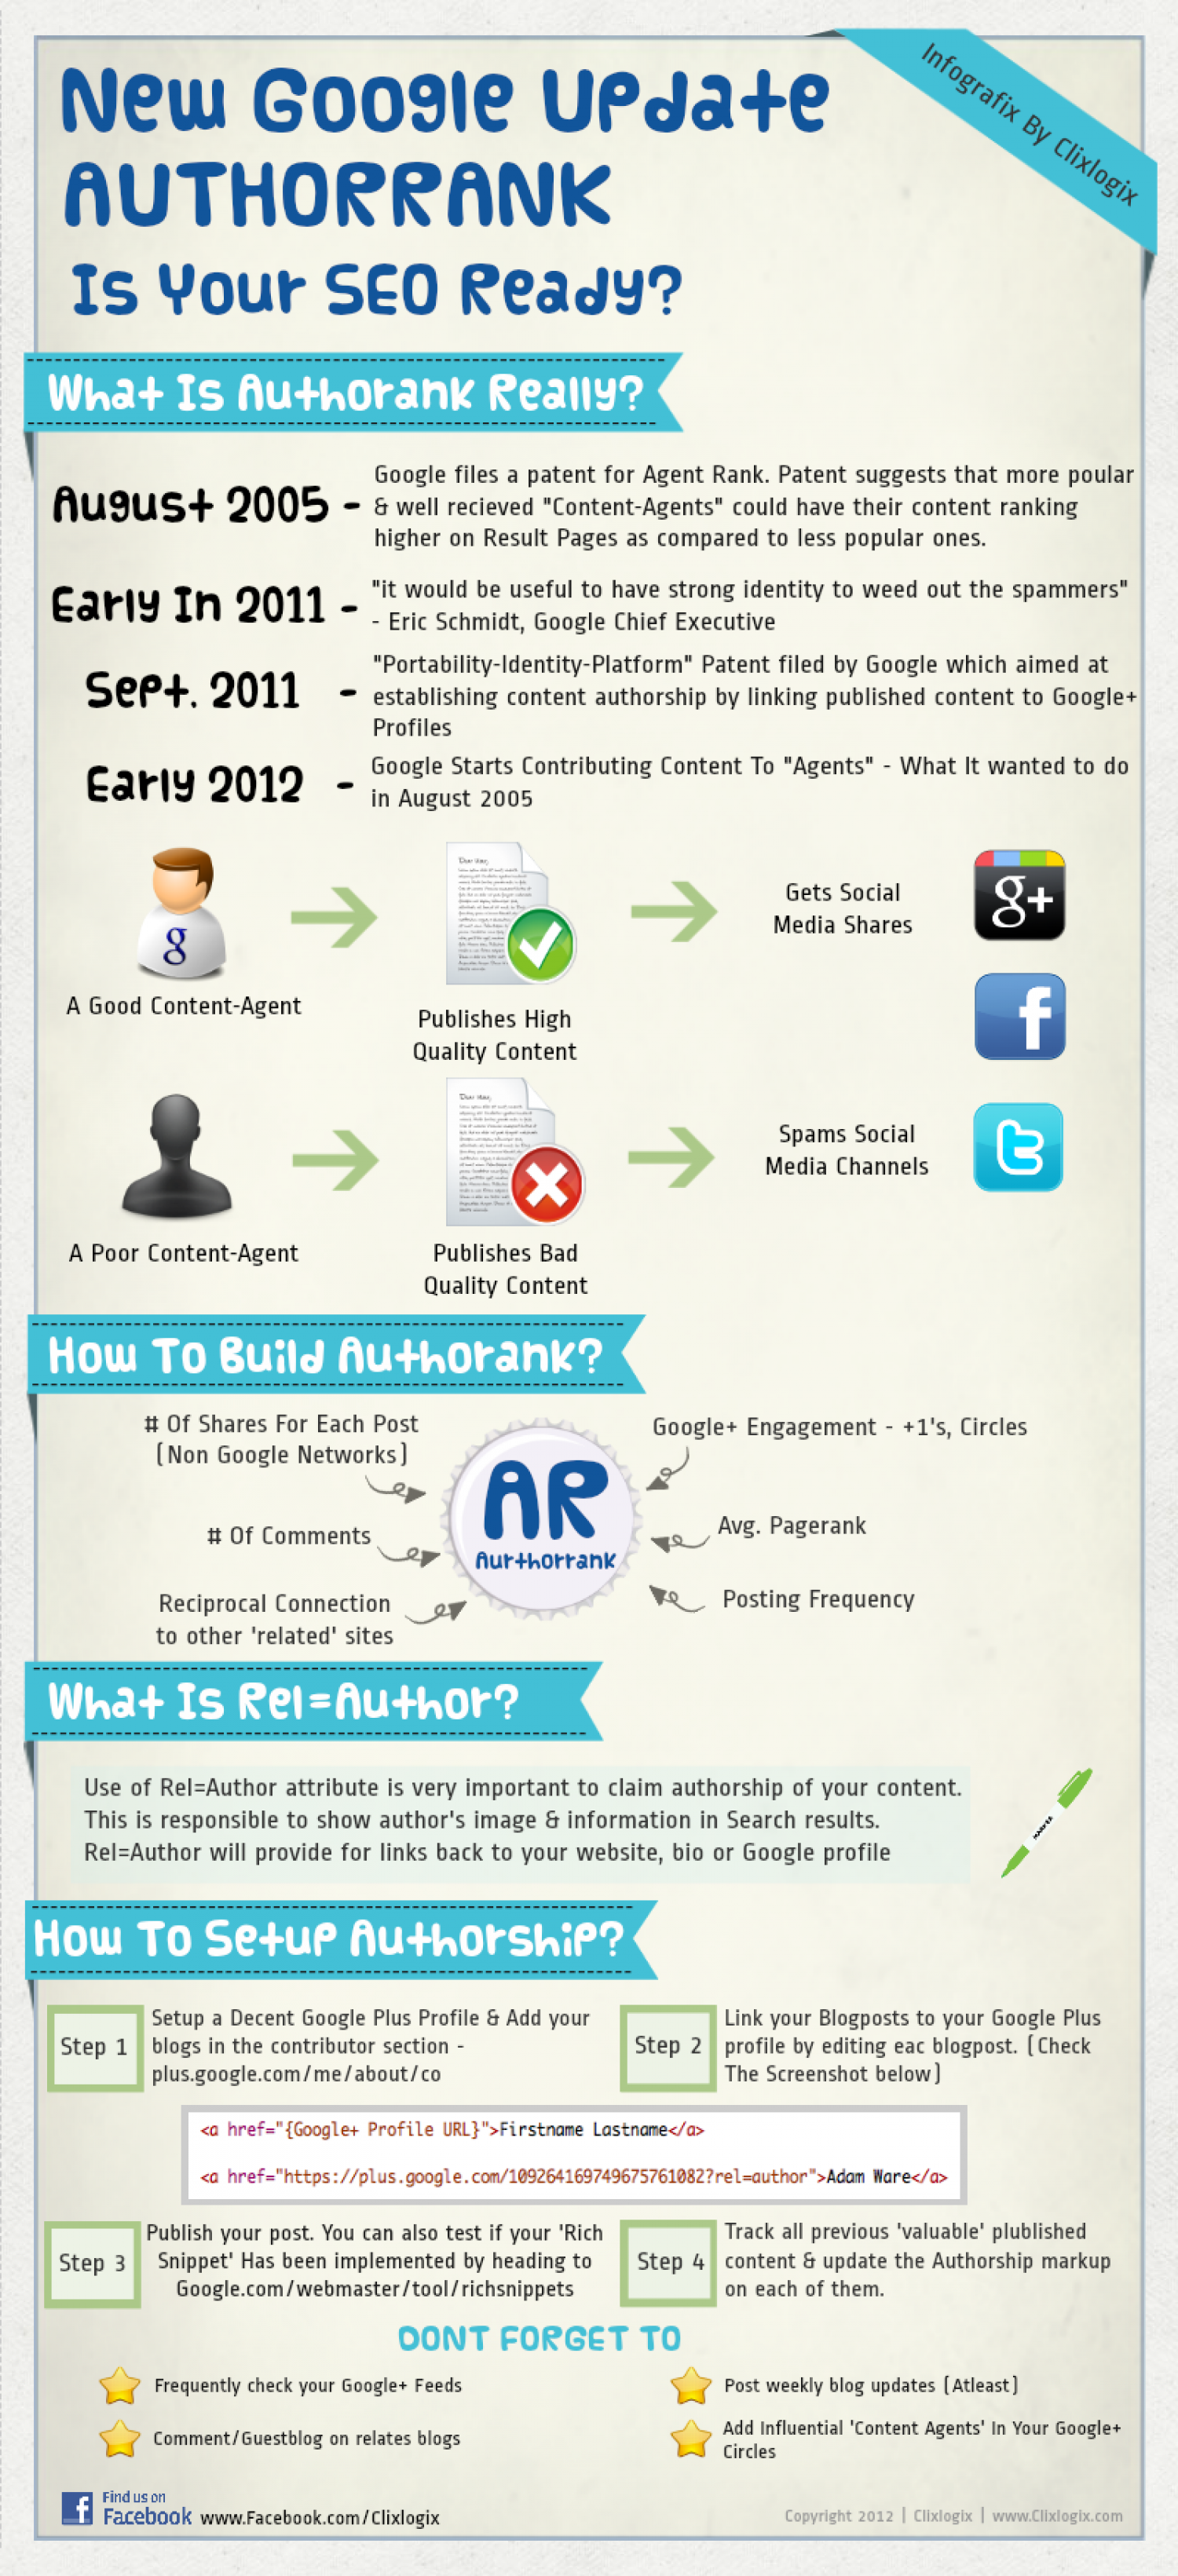 New Google Author Rank Update Infographic